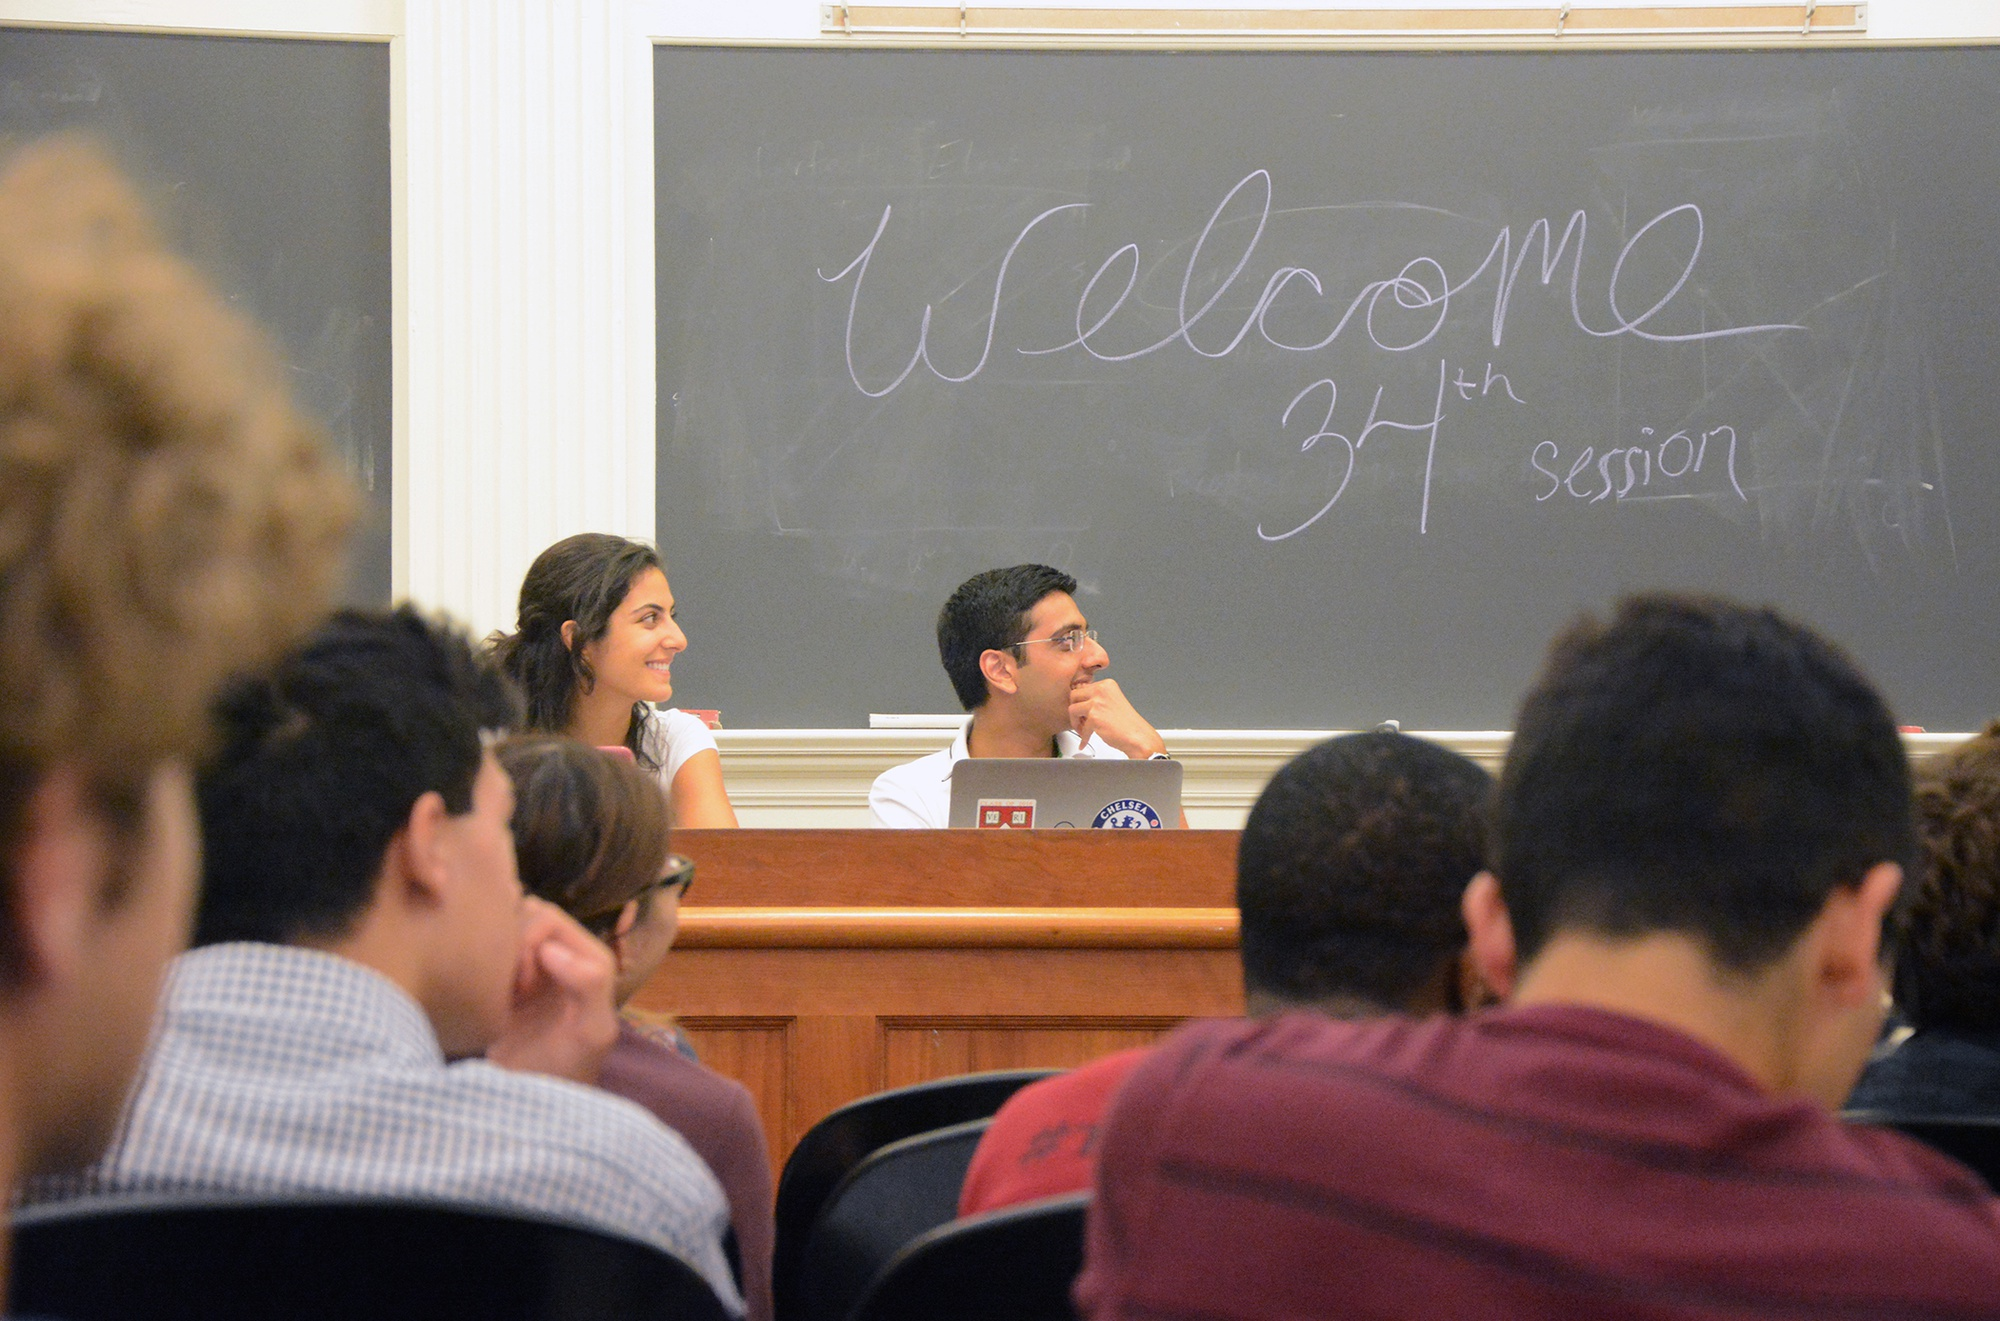 After voting closed on Friday, 44 students were elected onto the Undergraduate Council.